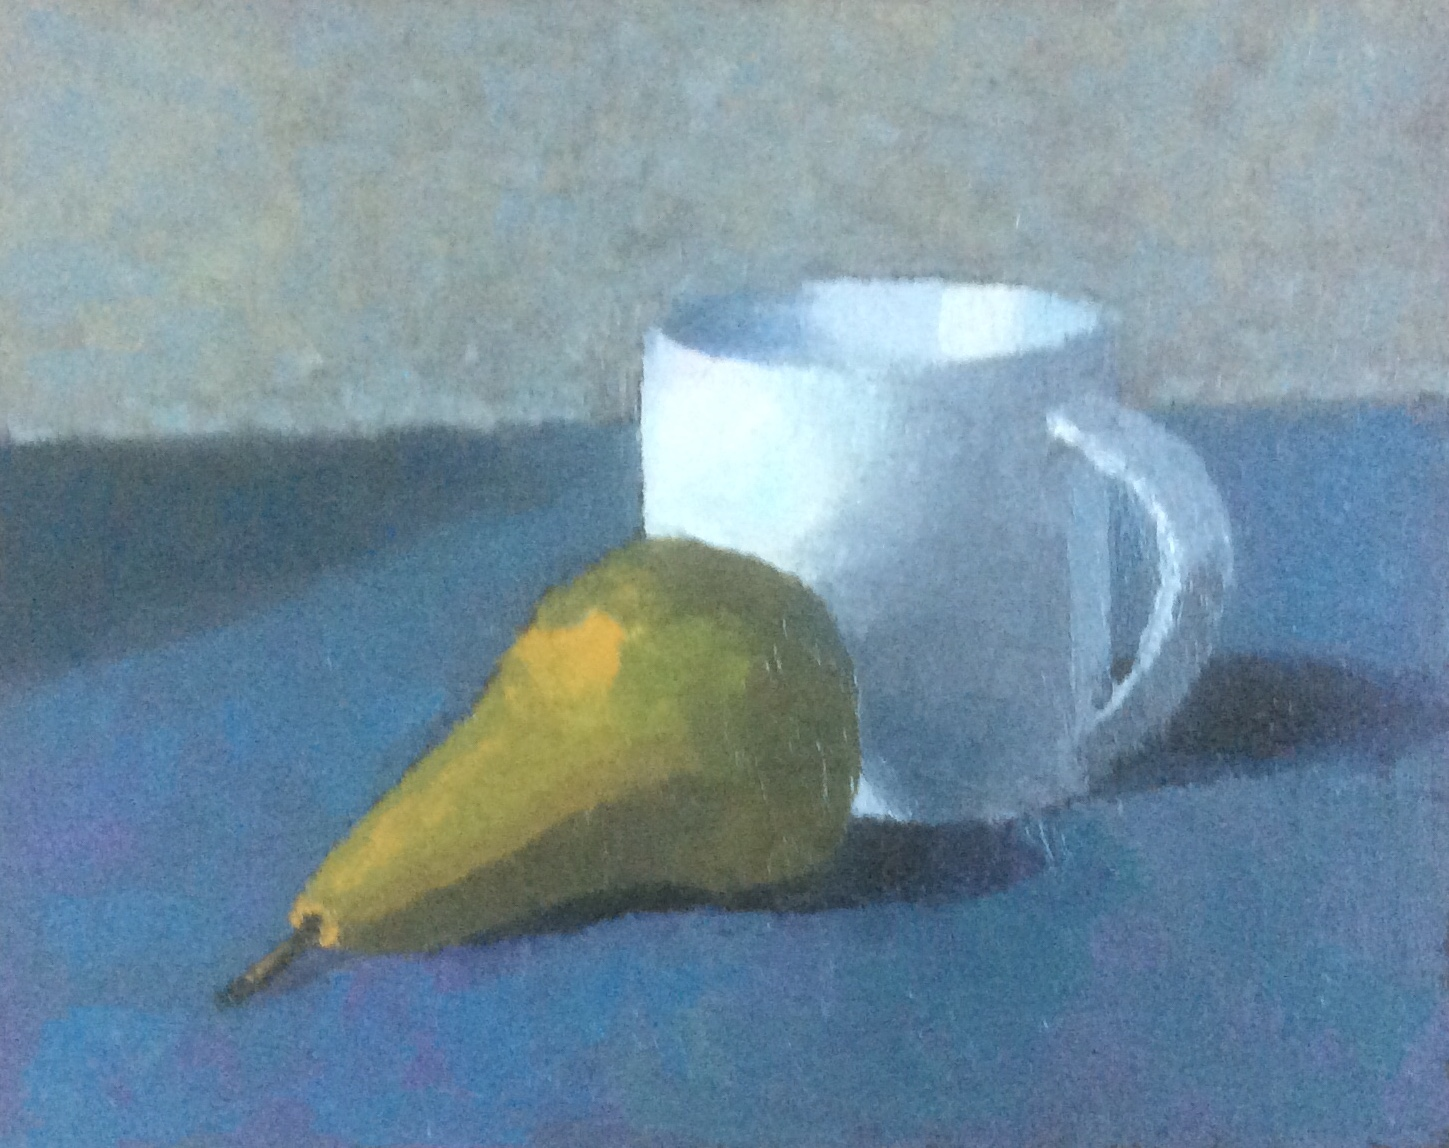 Conference pear with mug